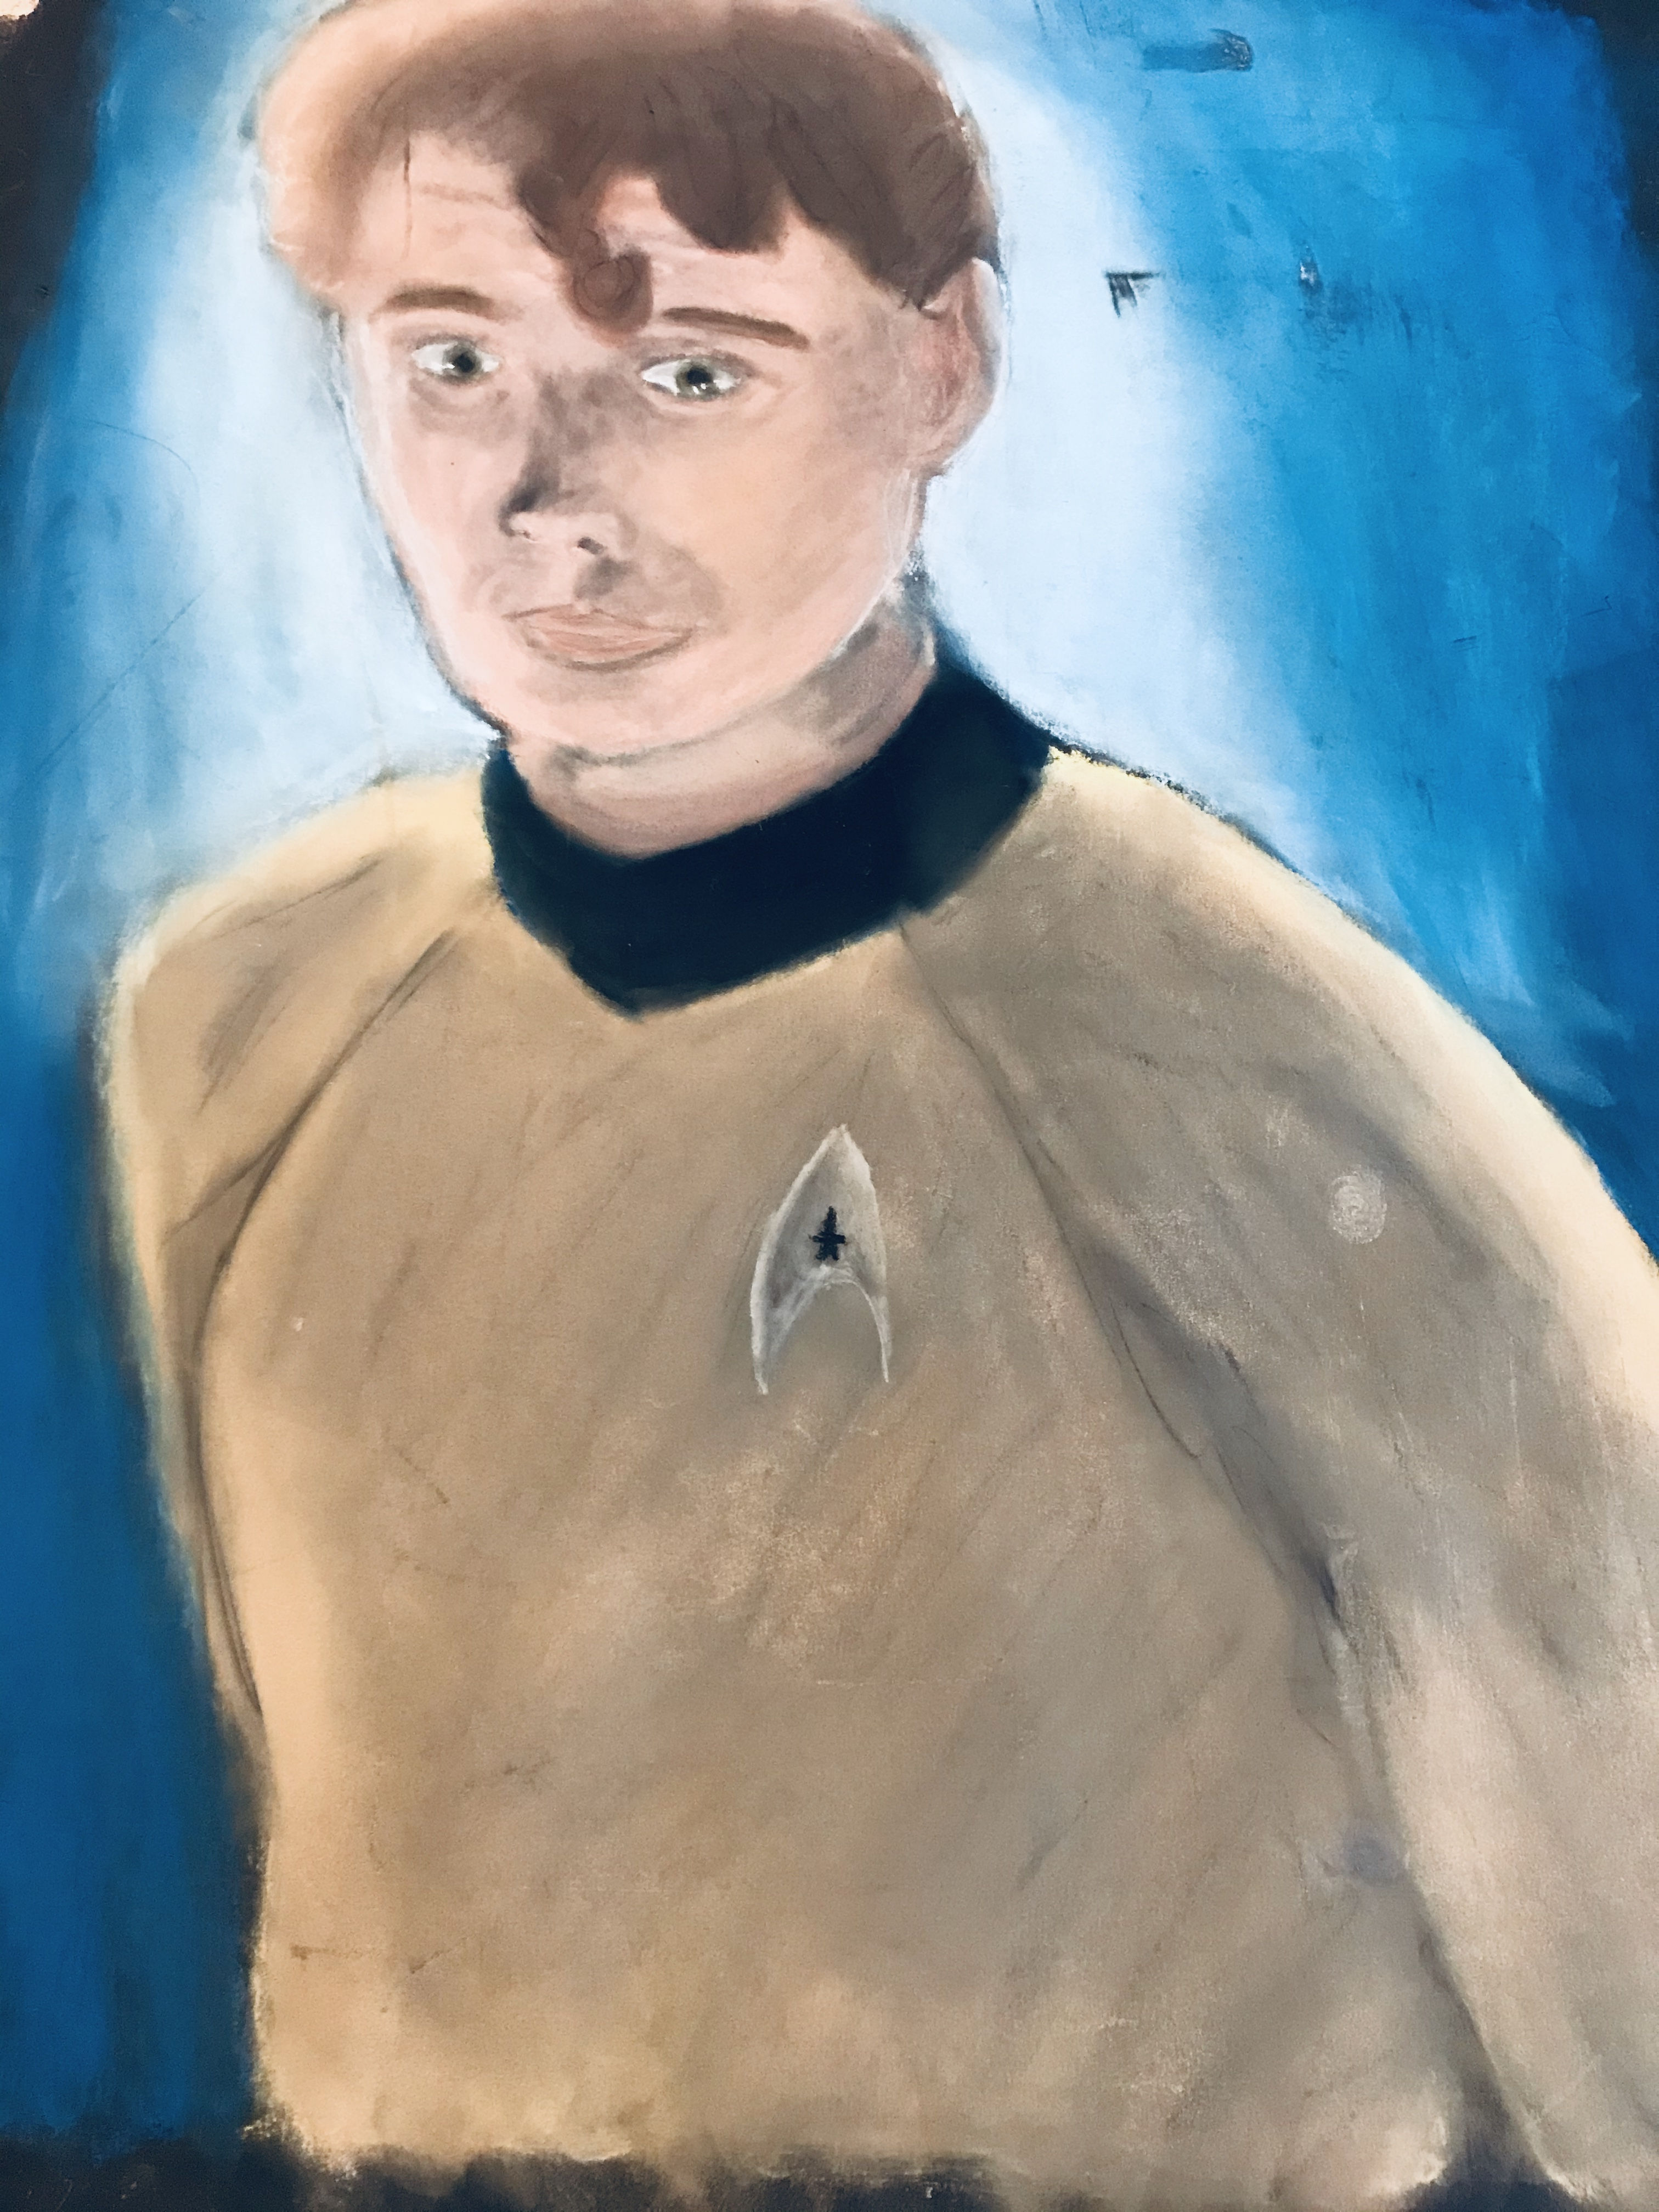 Chekov (Star Trek)